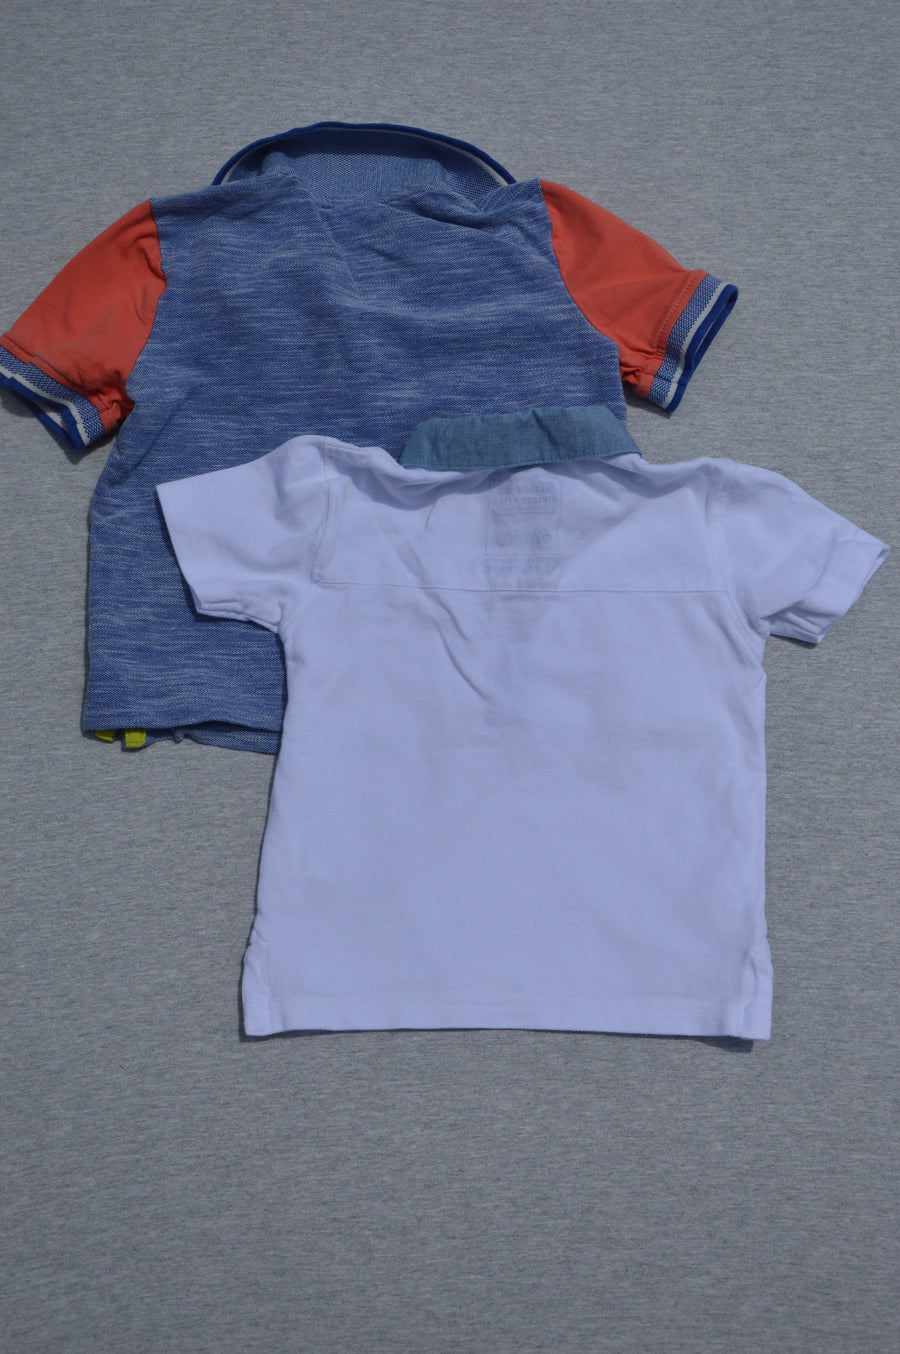 Mini Club & Next  - nearly new - 2 x white & blue marle short-sleeve polo shirts, size 9-12m